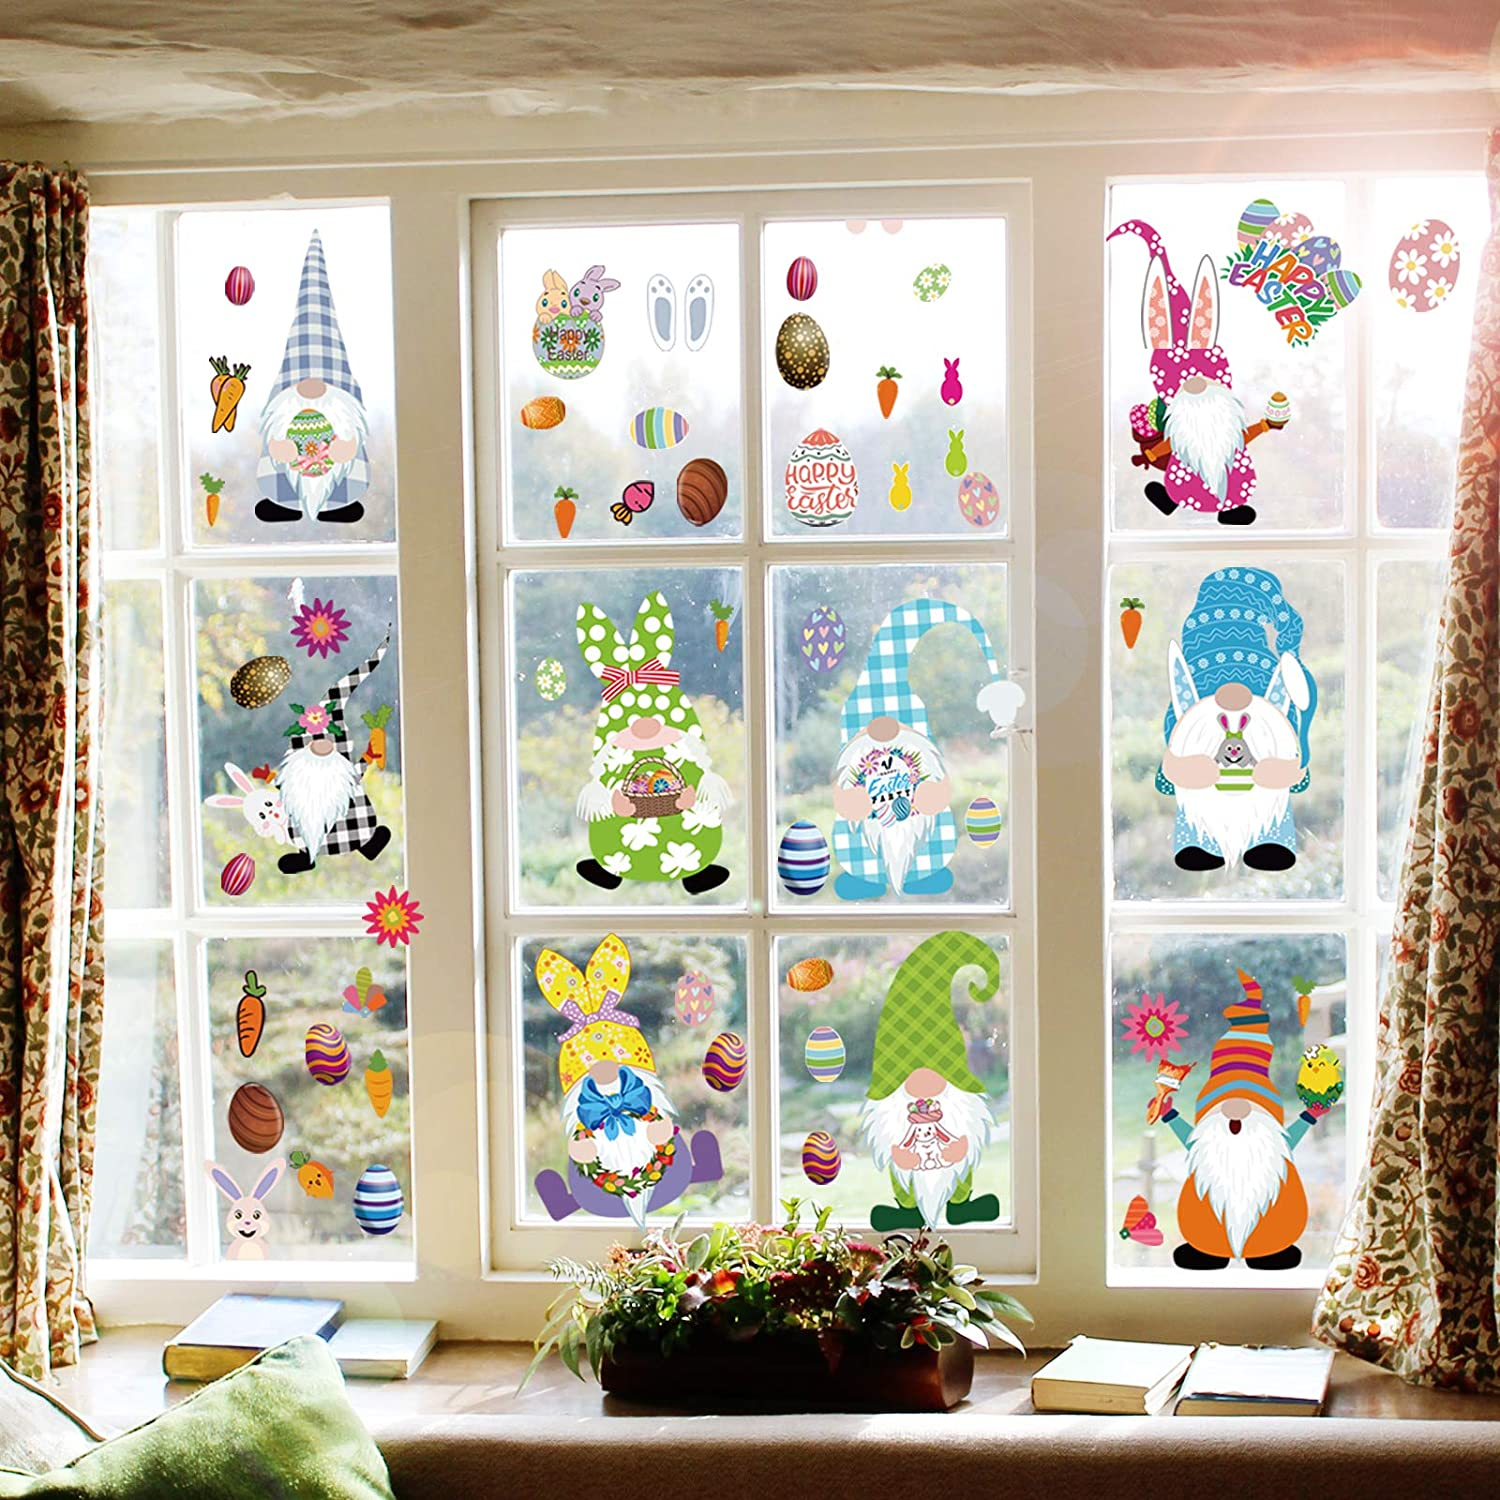 Easter Window Clings Decorations Atlanta Bargain sale Mall Stickers 9 Decal Sheets